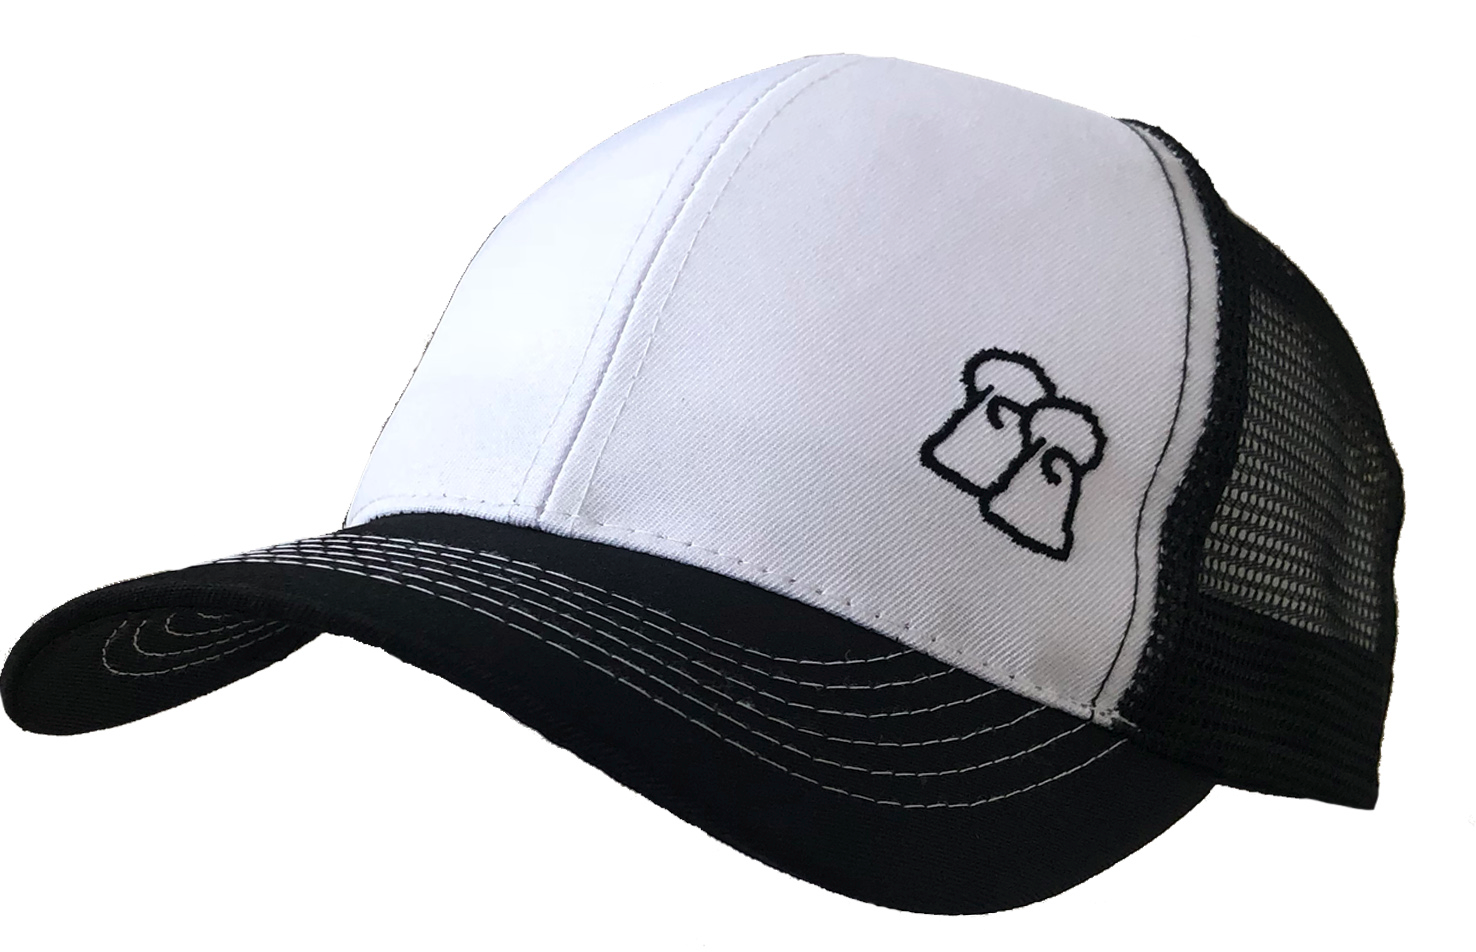 Penguin Peak - Black & White Trucker Cap